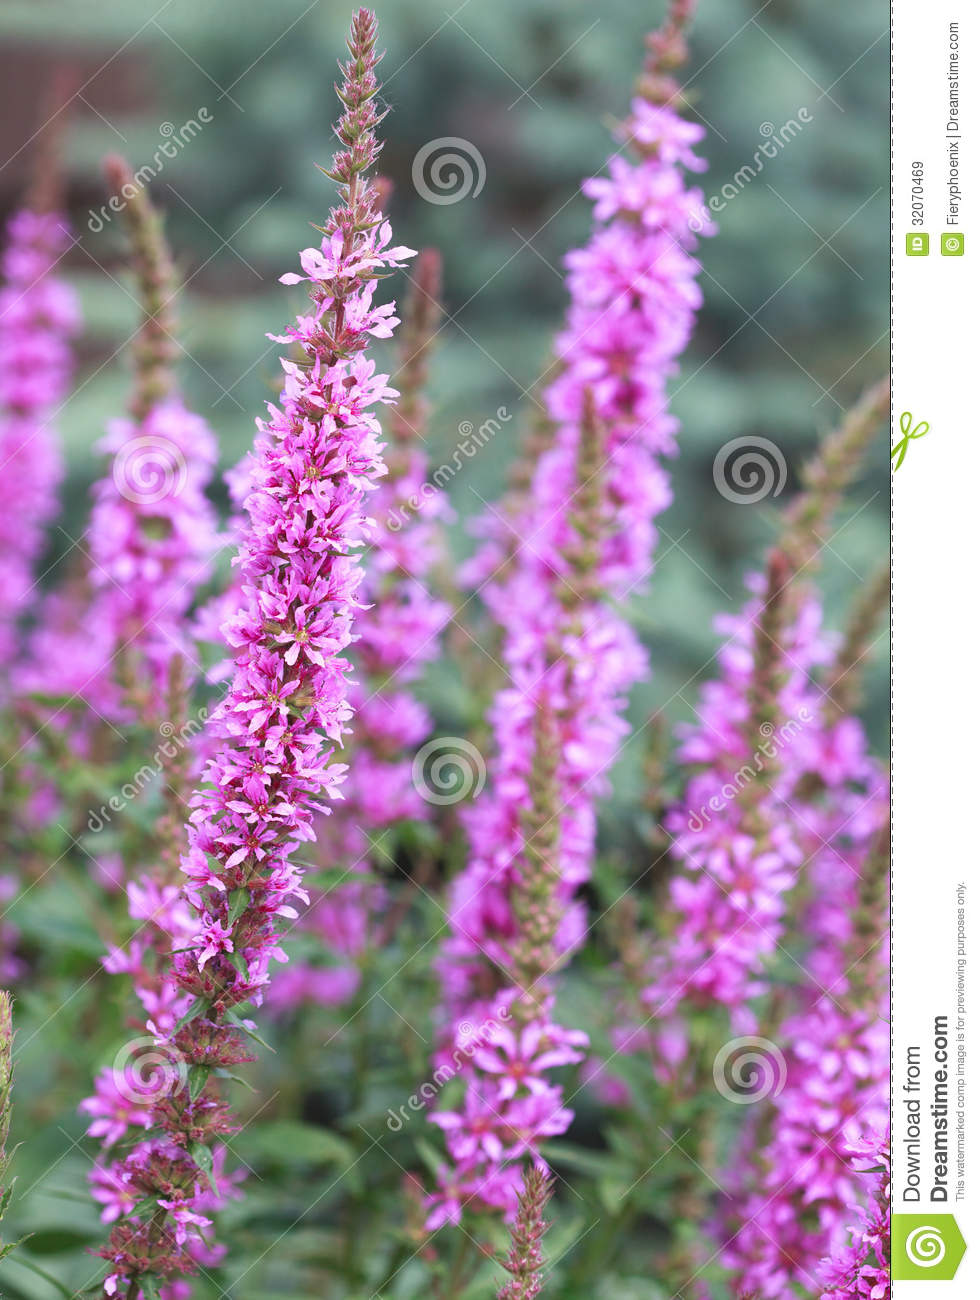 Flowering Purple Loosestrife Plant (Lythrum Salicaria) Or Crybab.